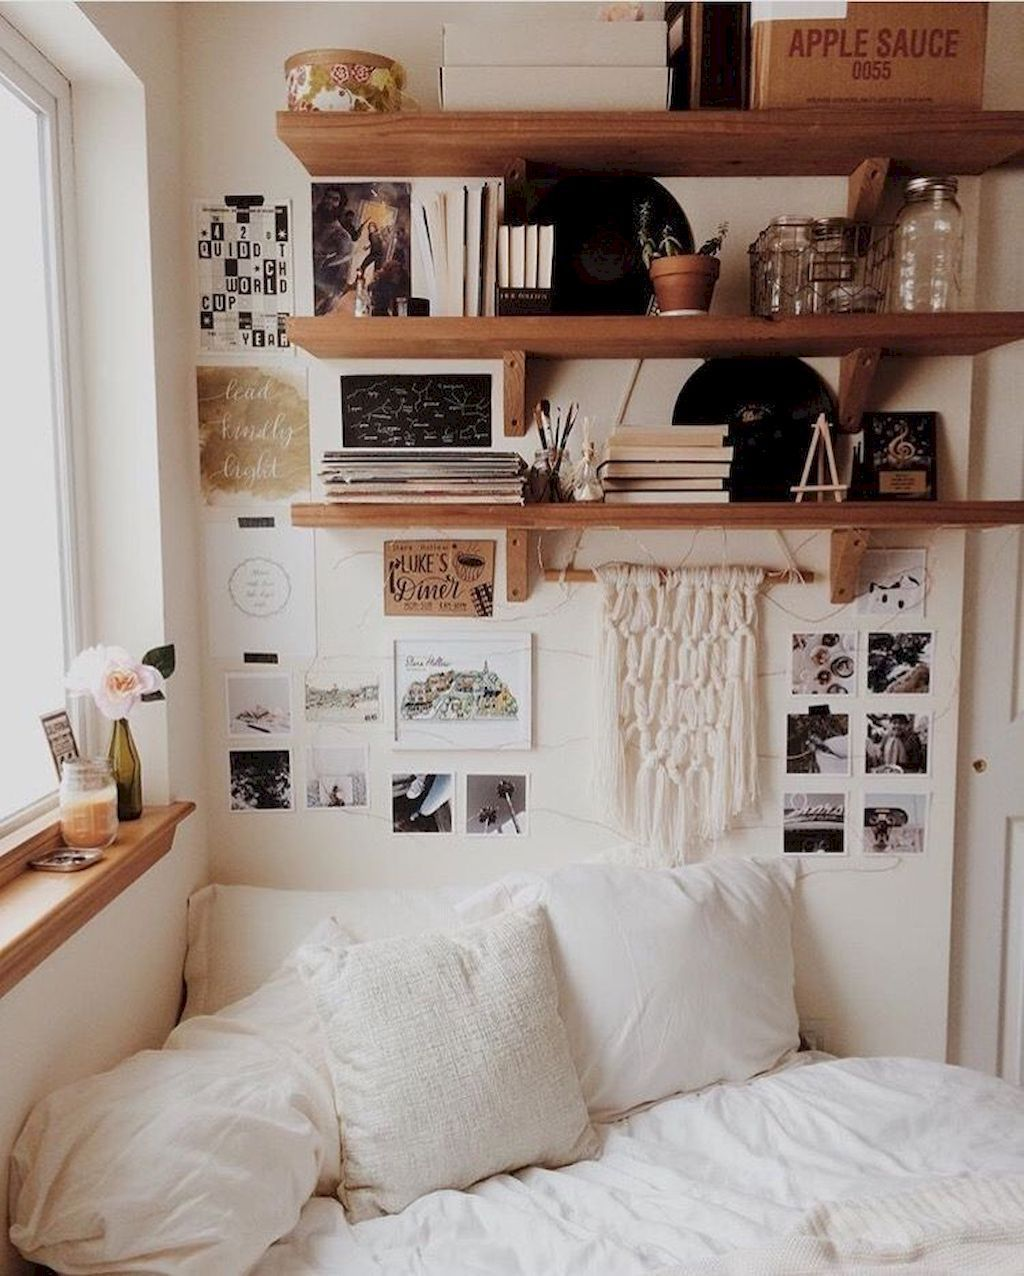 30 Simple Diy Apartment Decorating Ideas On A Budget In 2020